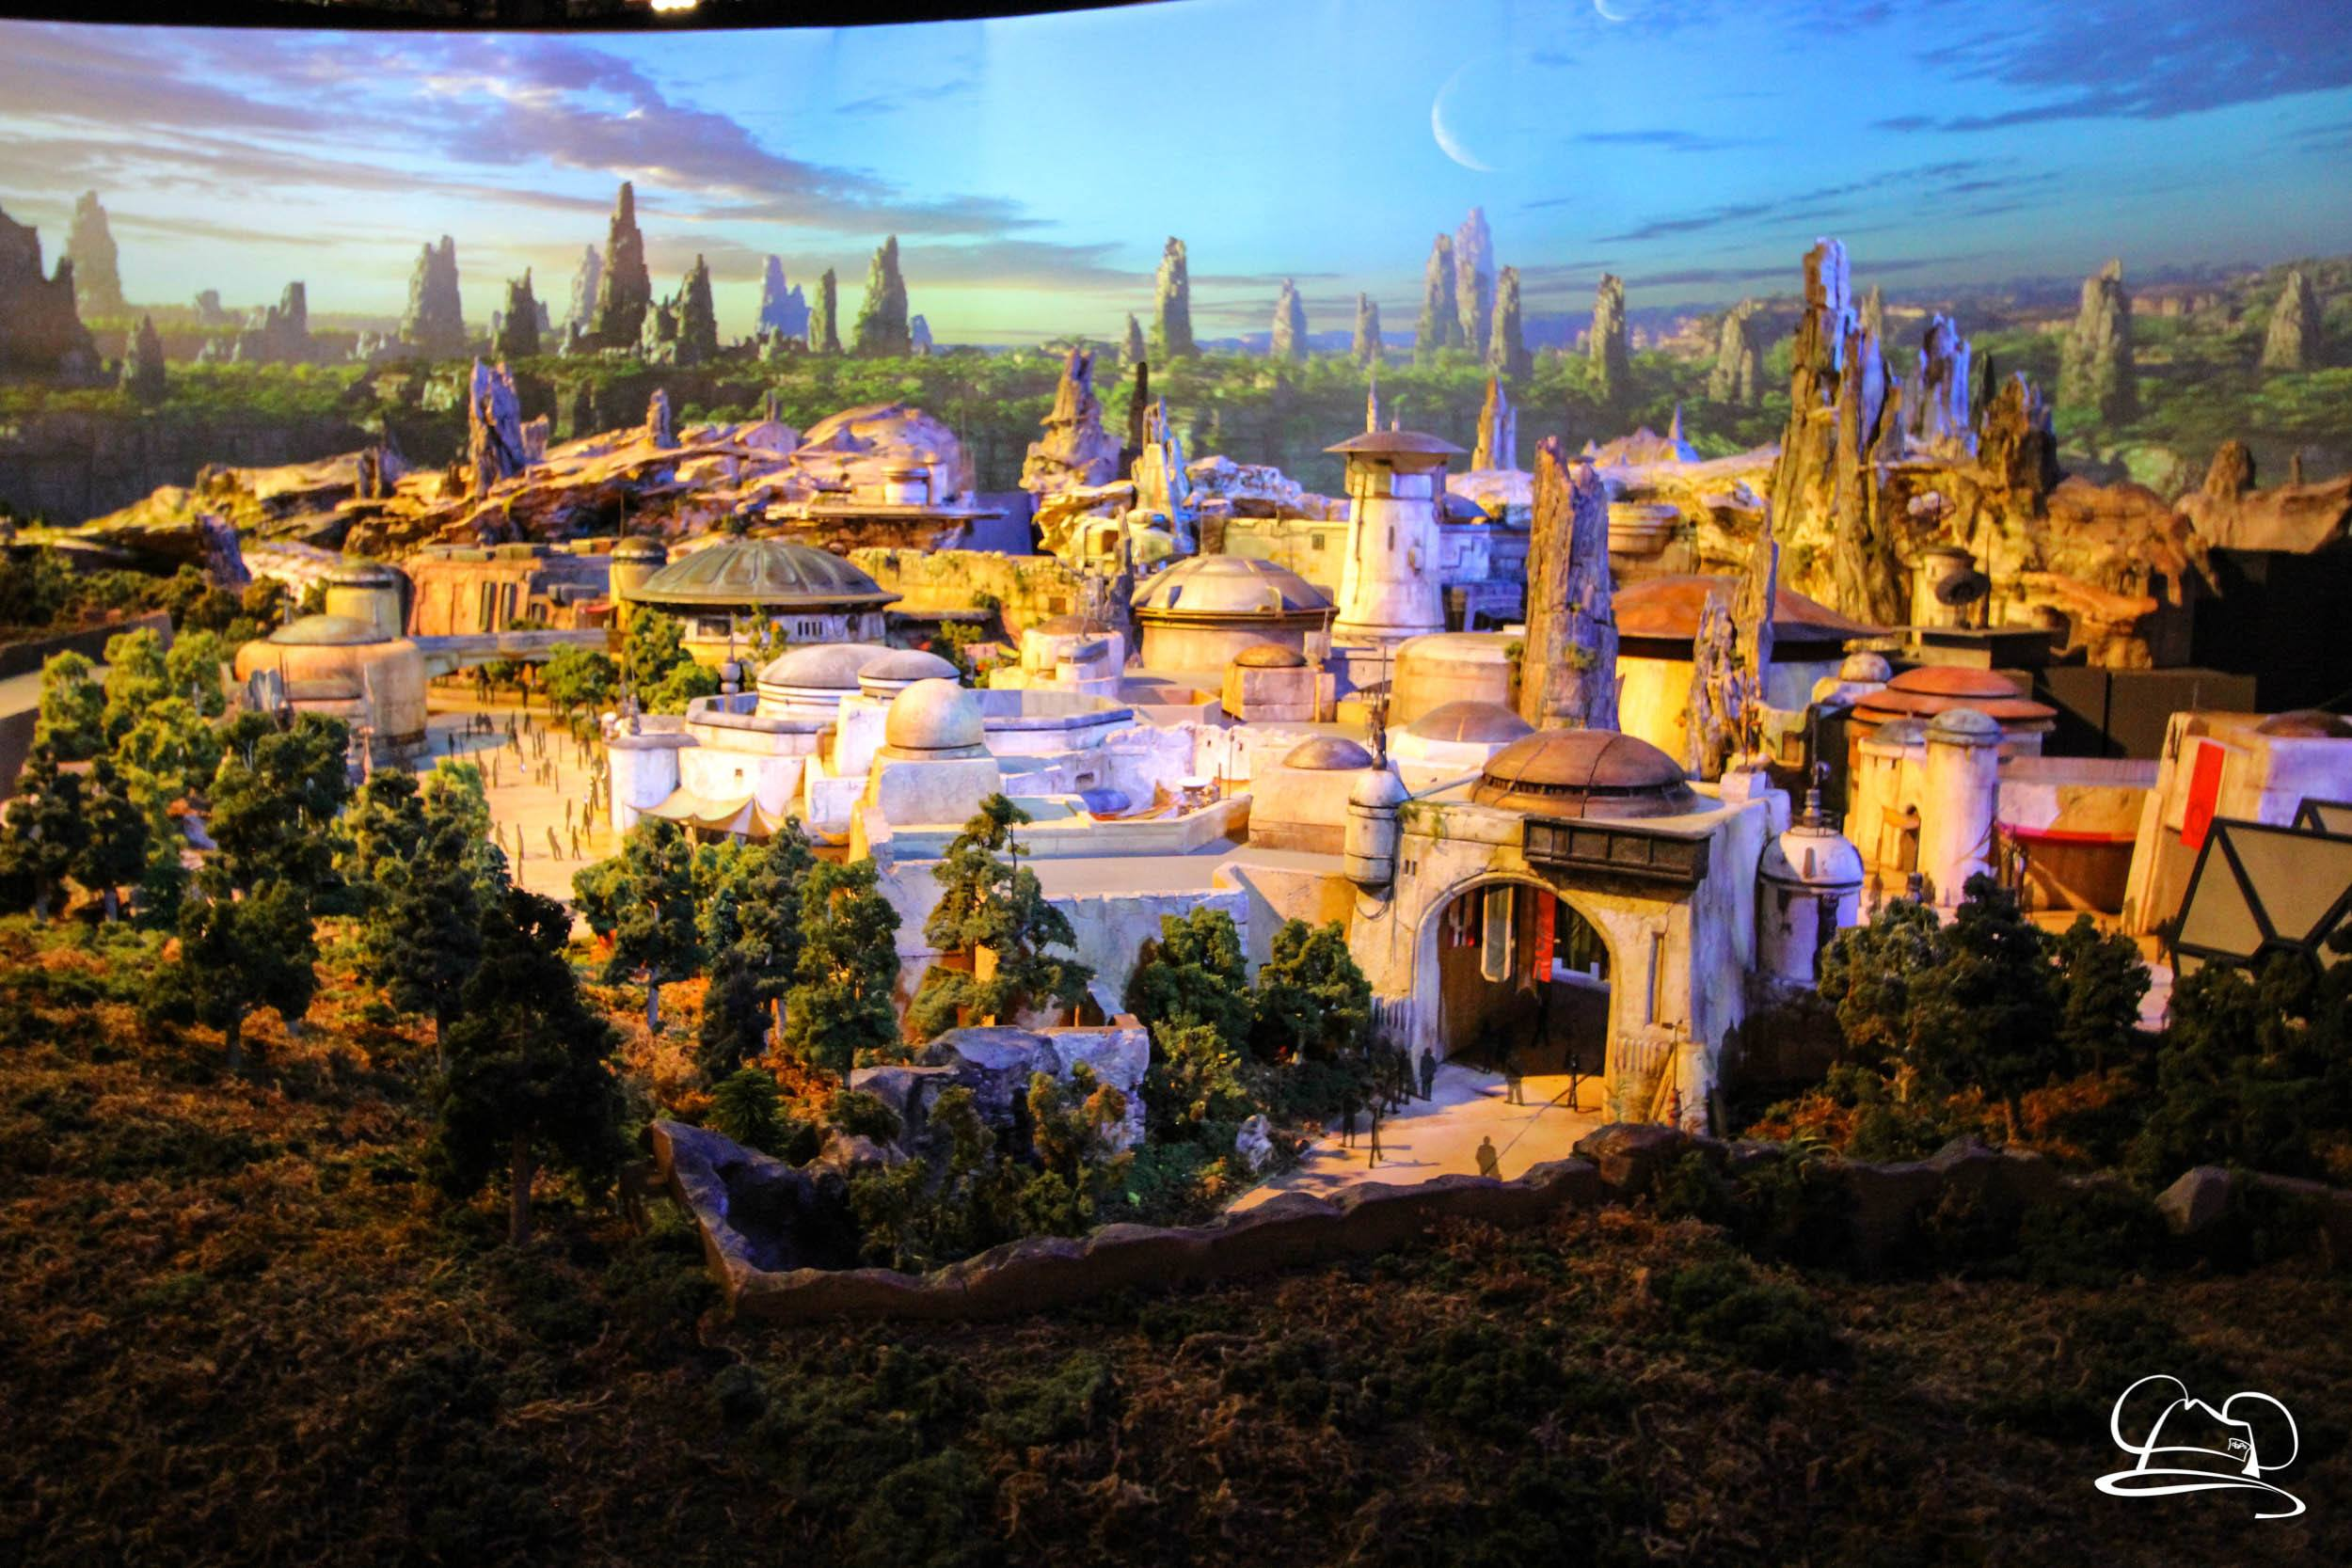 Star Wars: Galaxy's Edge and Toy Story Land Models Coming to Disney's Hollywood Studios